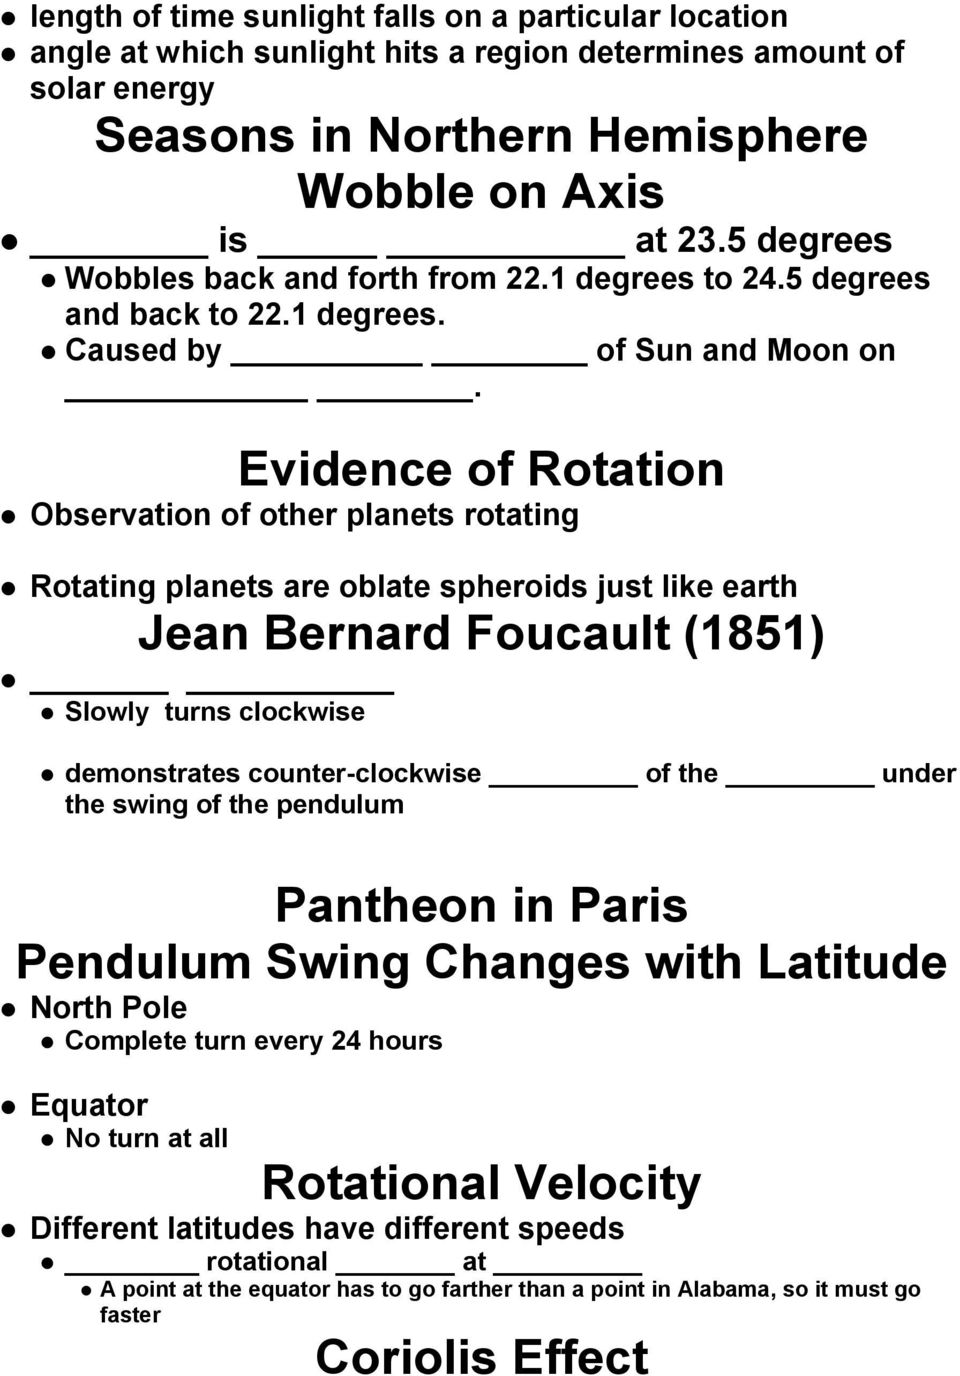 Evidence of Rotation Observation of other planets rotating Rotating planets are oblate spheroids just like earth Jean Bernard Foucault (1851) Slowly turns clockwise demonstrates counter-clockwise of